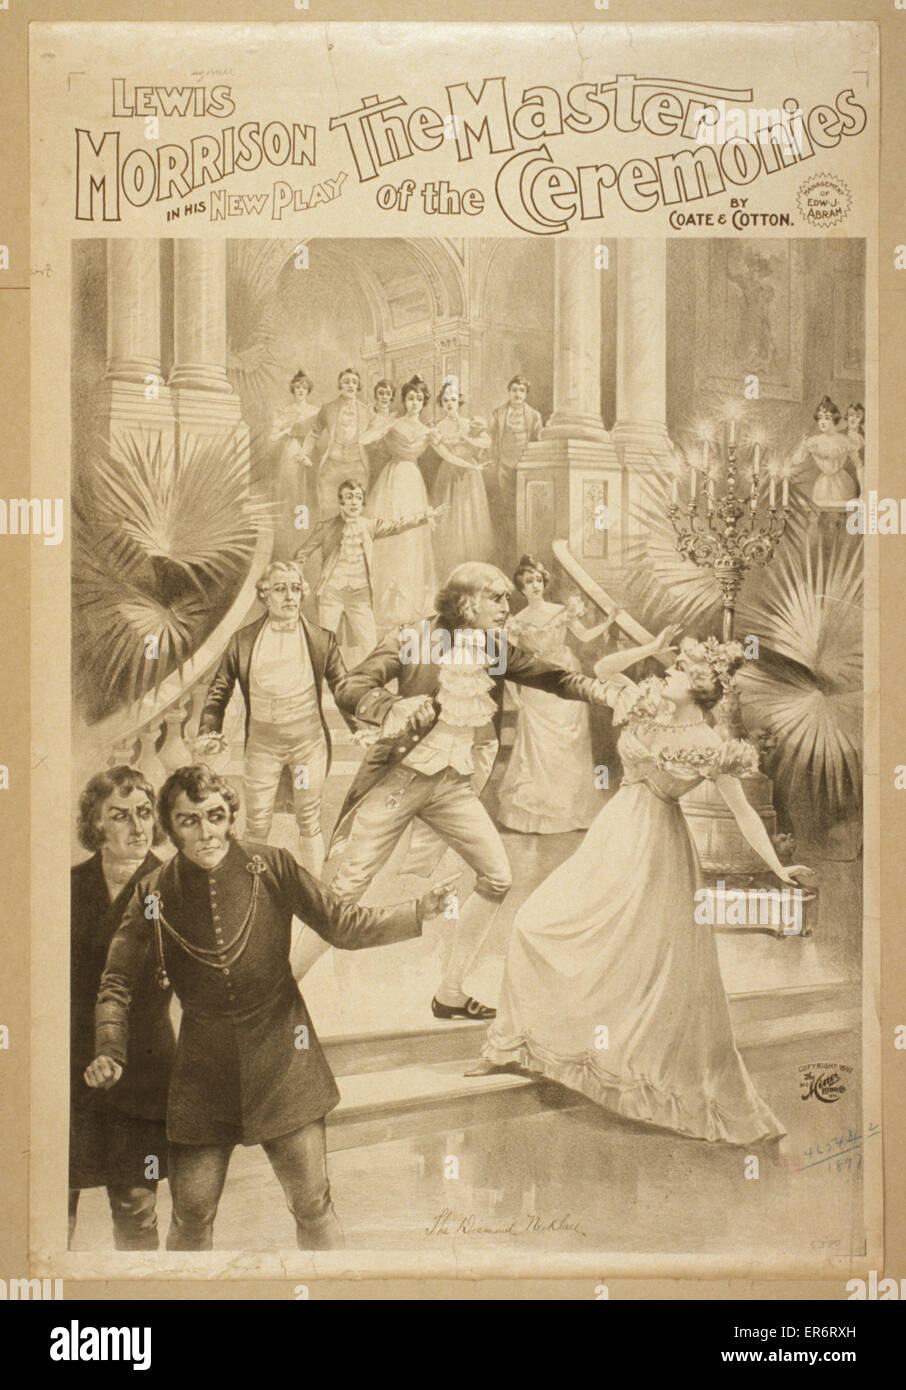 Lewis Morrison in his new play, The master of the ceremonies by Coate & Cotton. Date c1897. - Stock Image